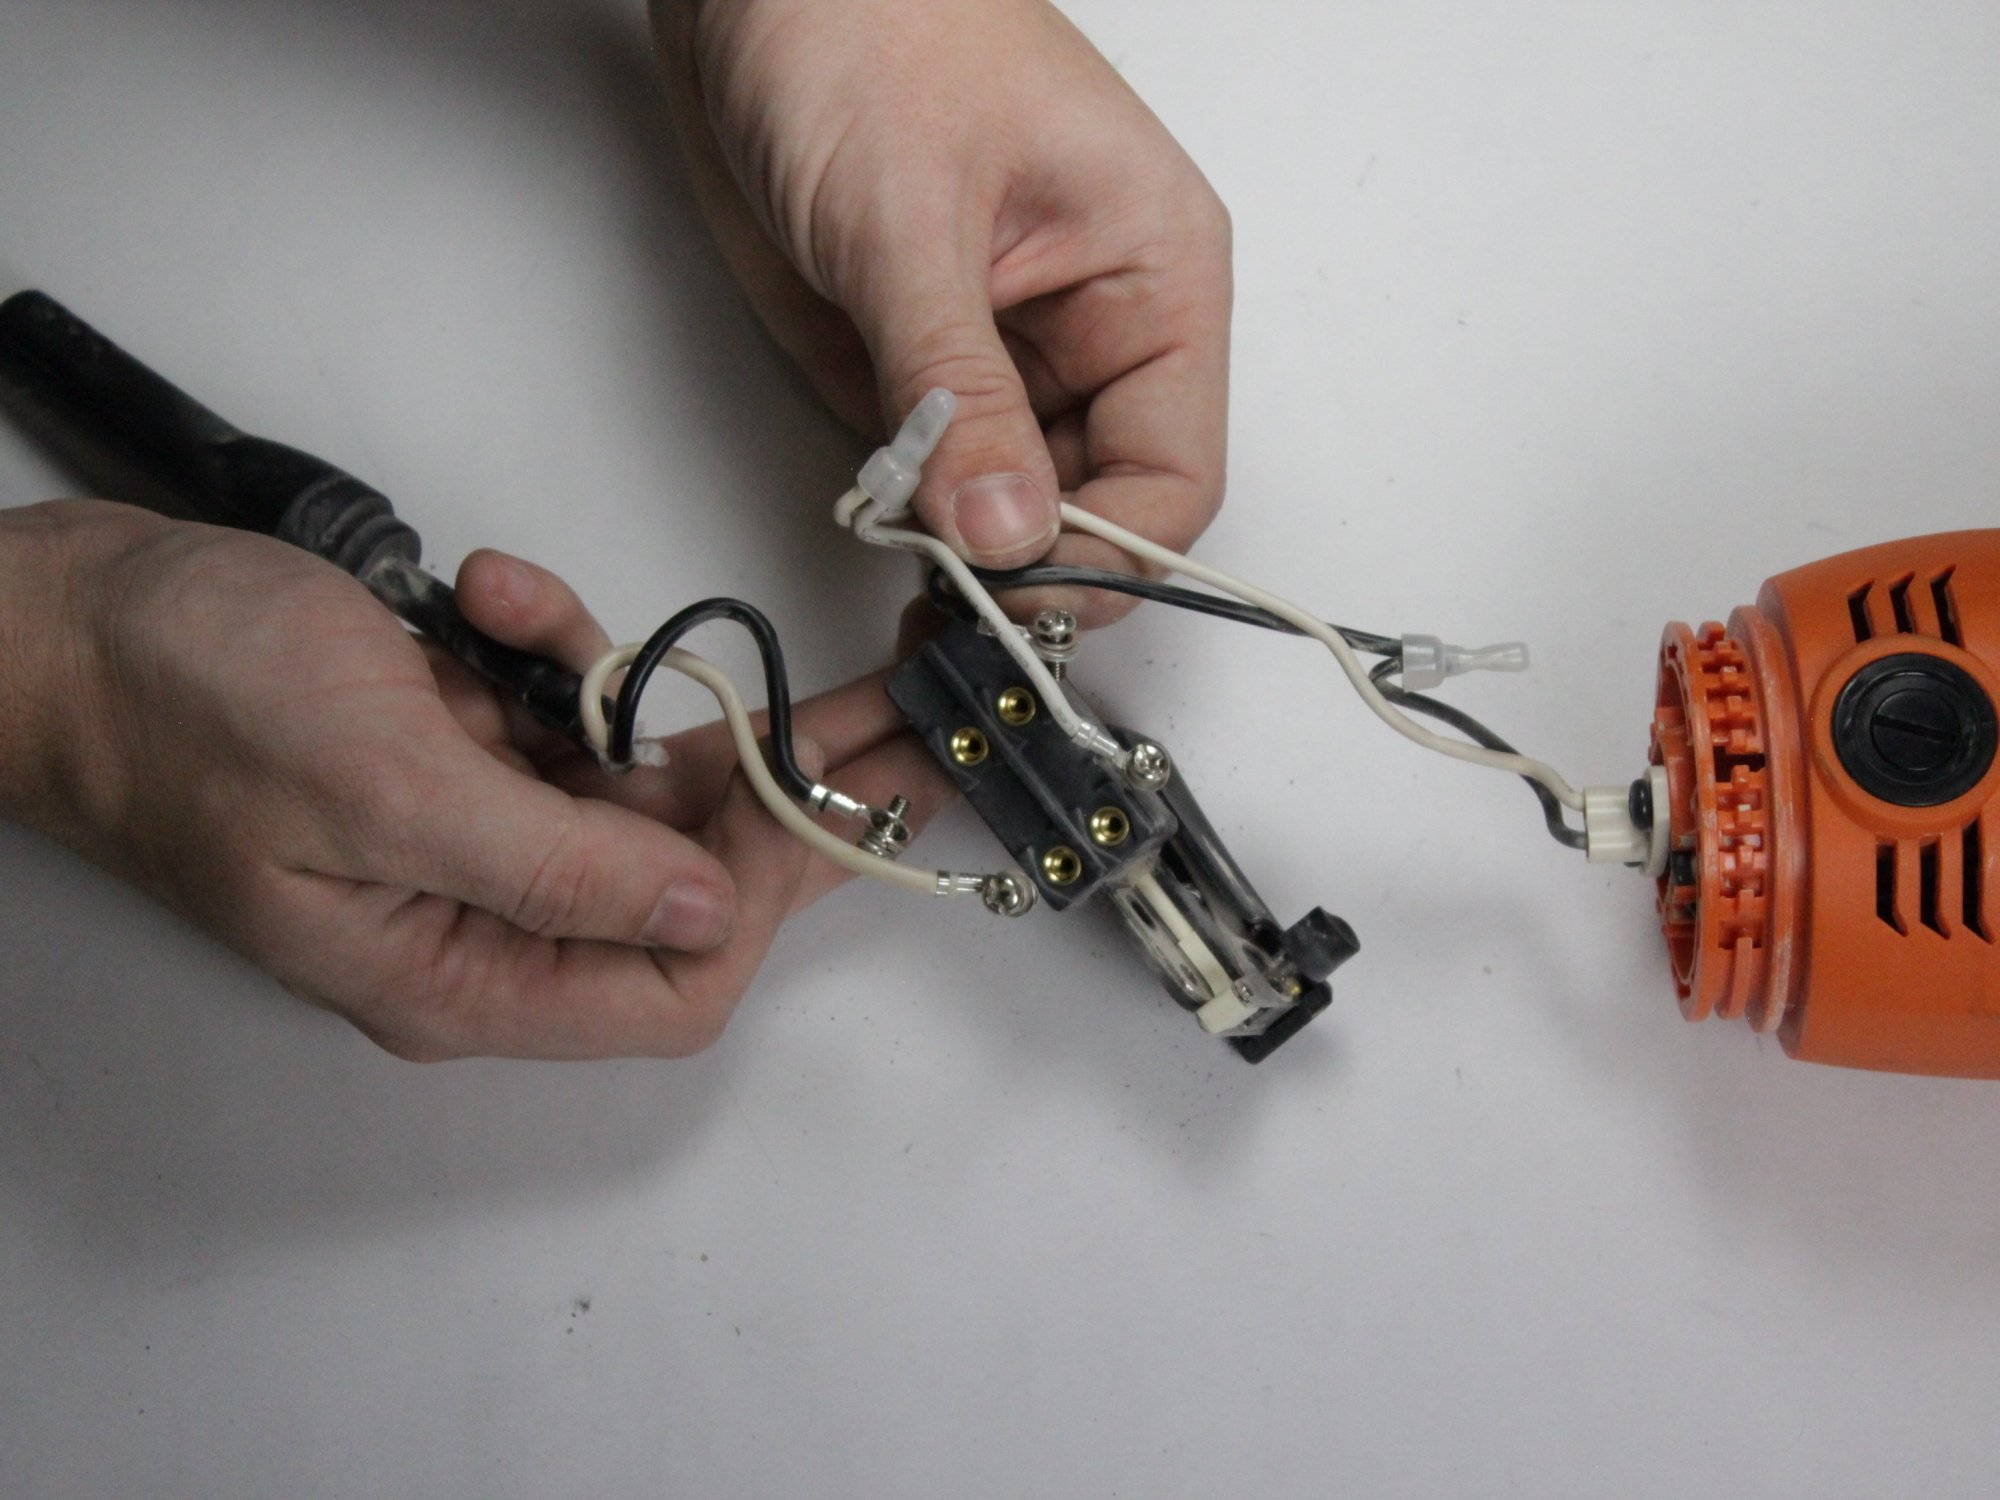 hight resolution of ridgid angle grinder r10202 wiring assembly replacement